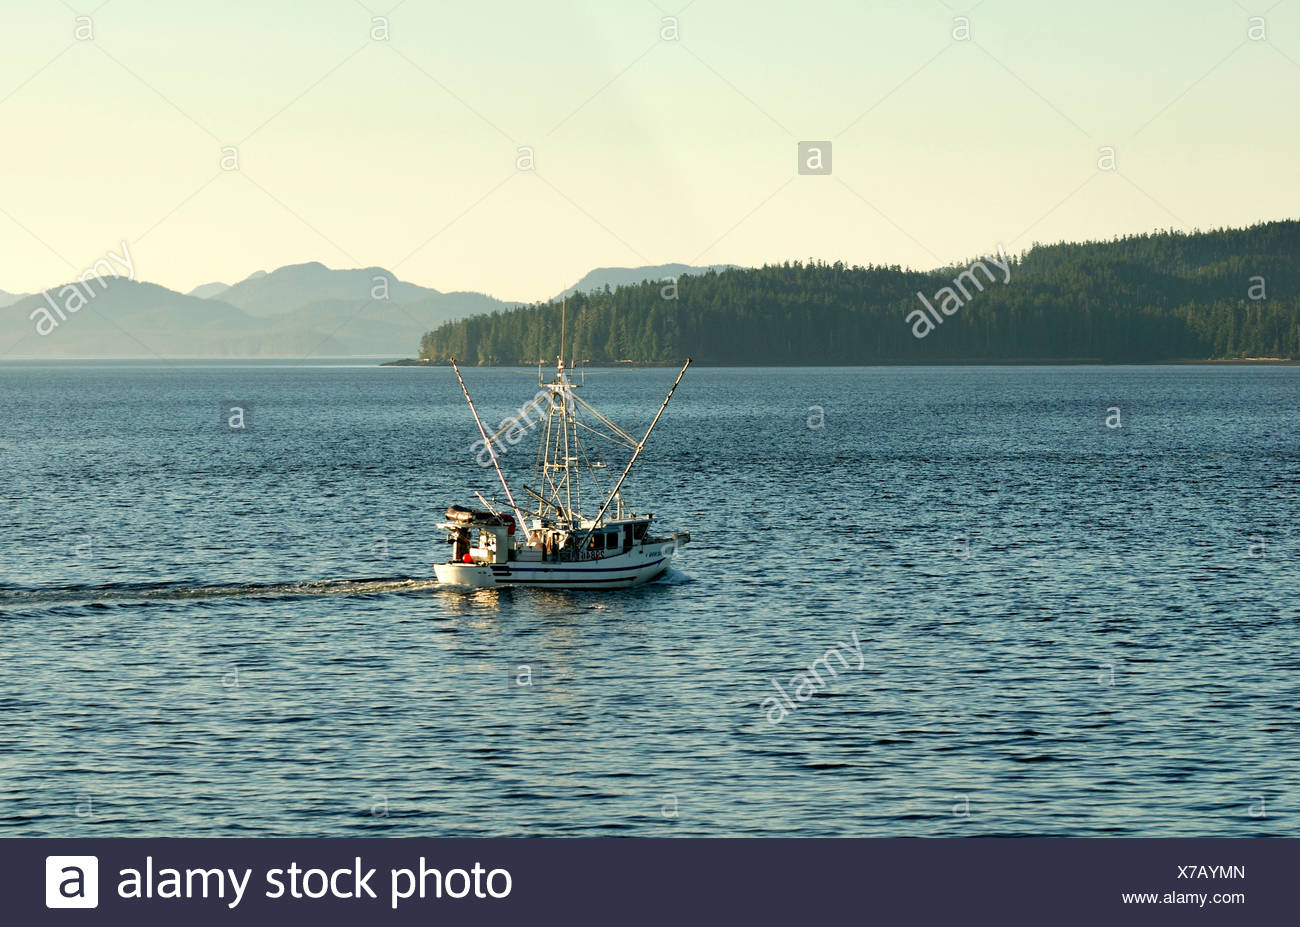 Fishing boat in the Inside Passage, British Columbia, Canada, North America - Stock Image